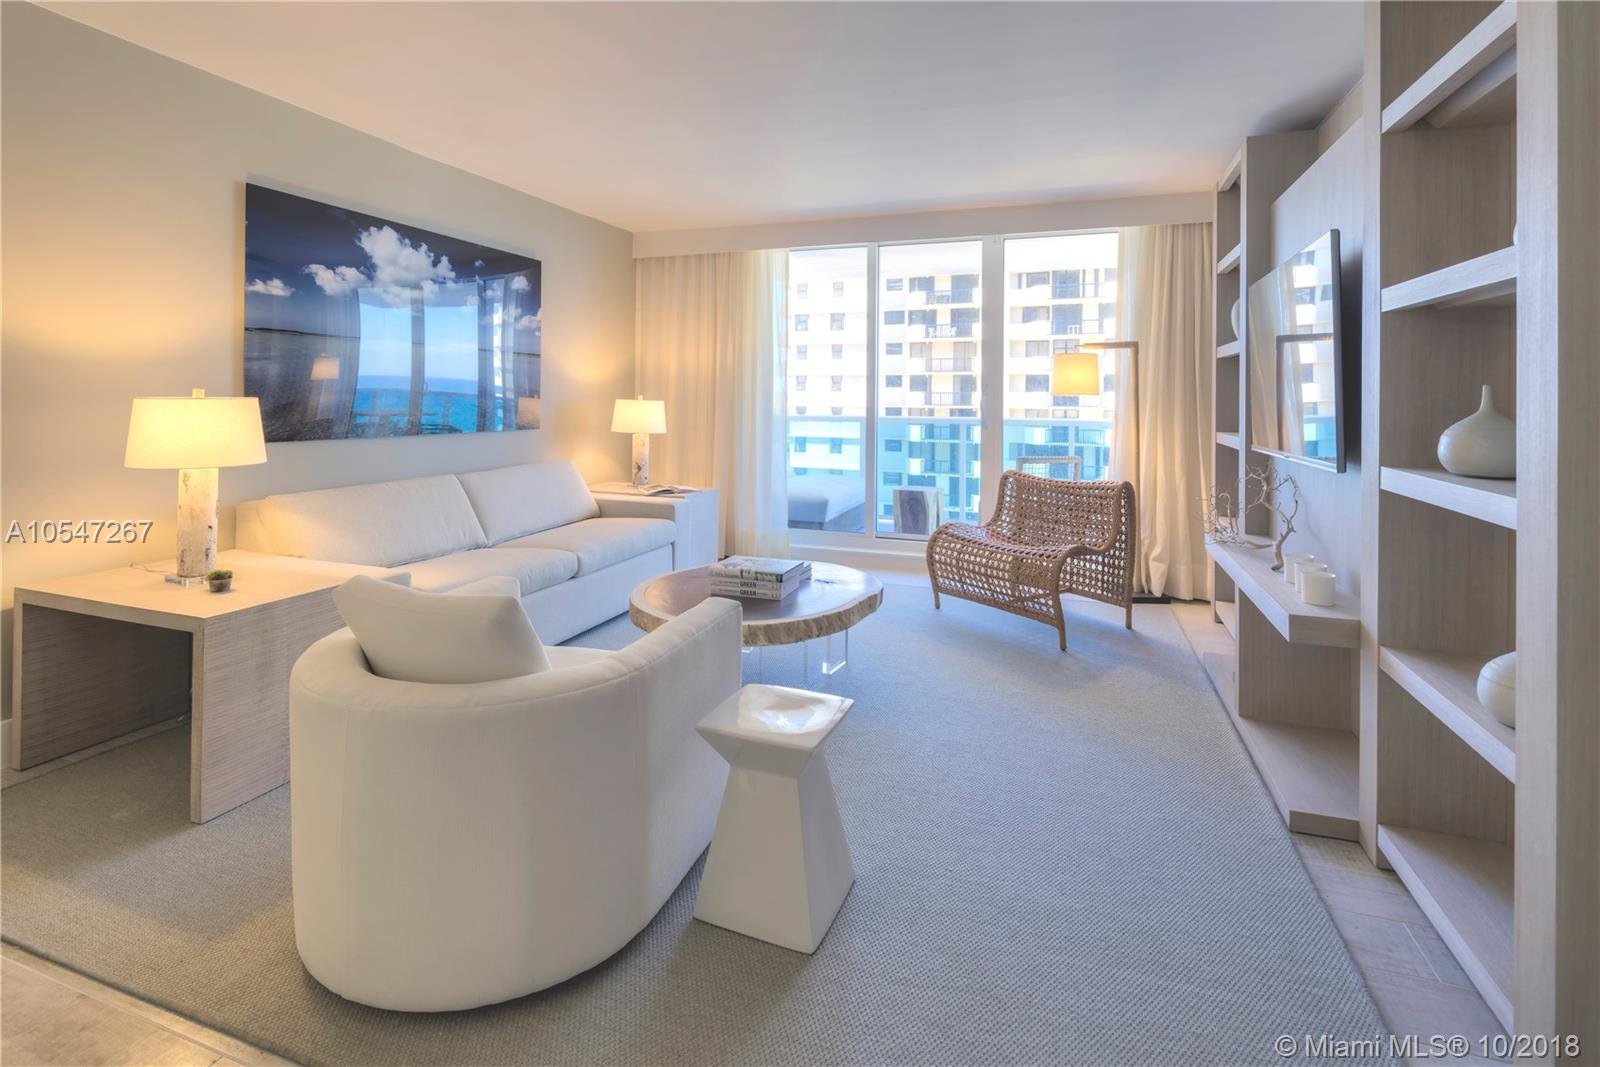 102 24th St #1009 Property Photo - Miami Beach, FL real estate listing